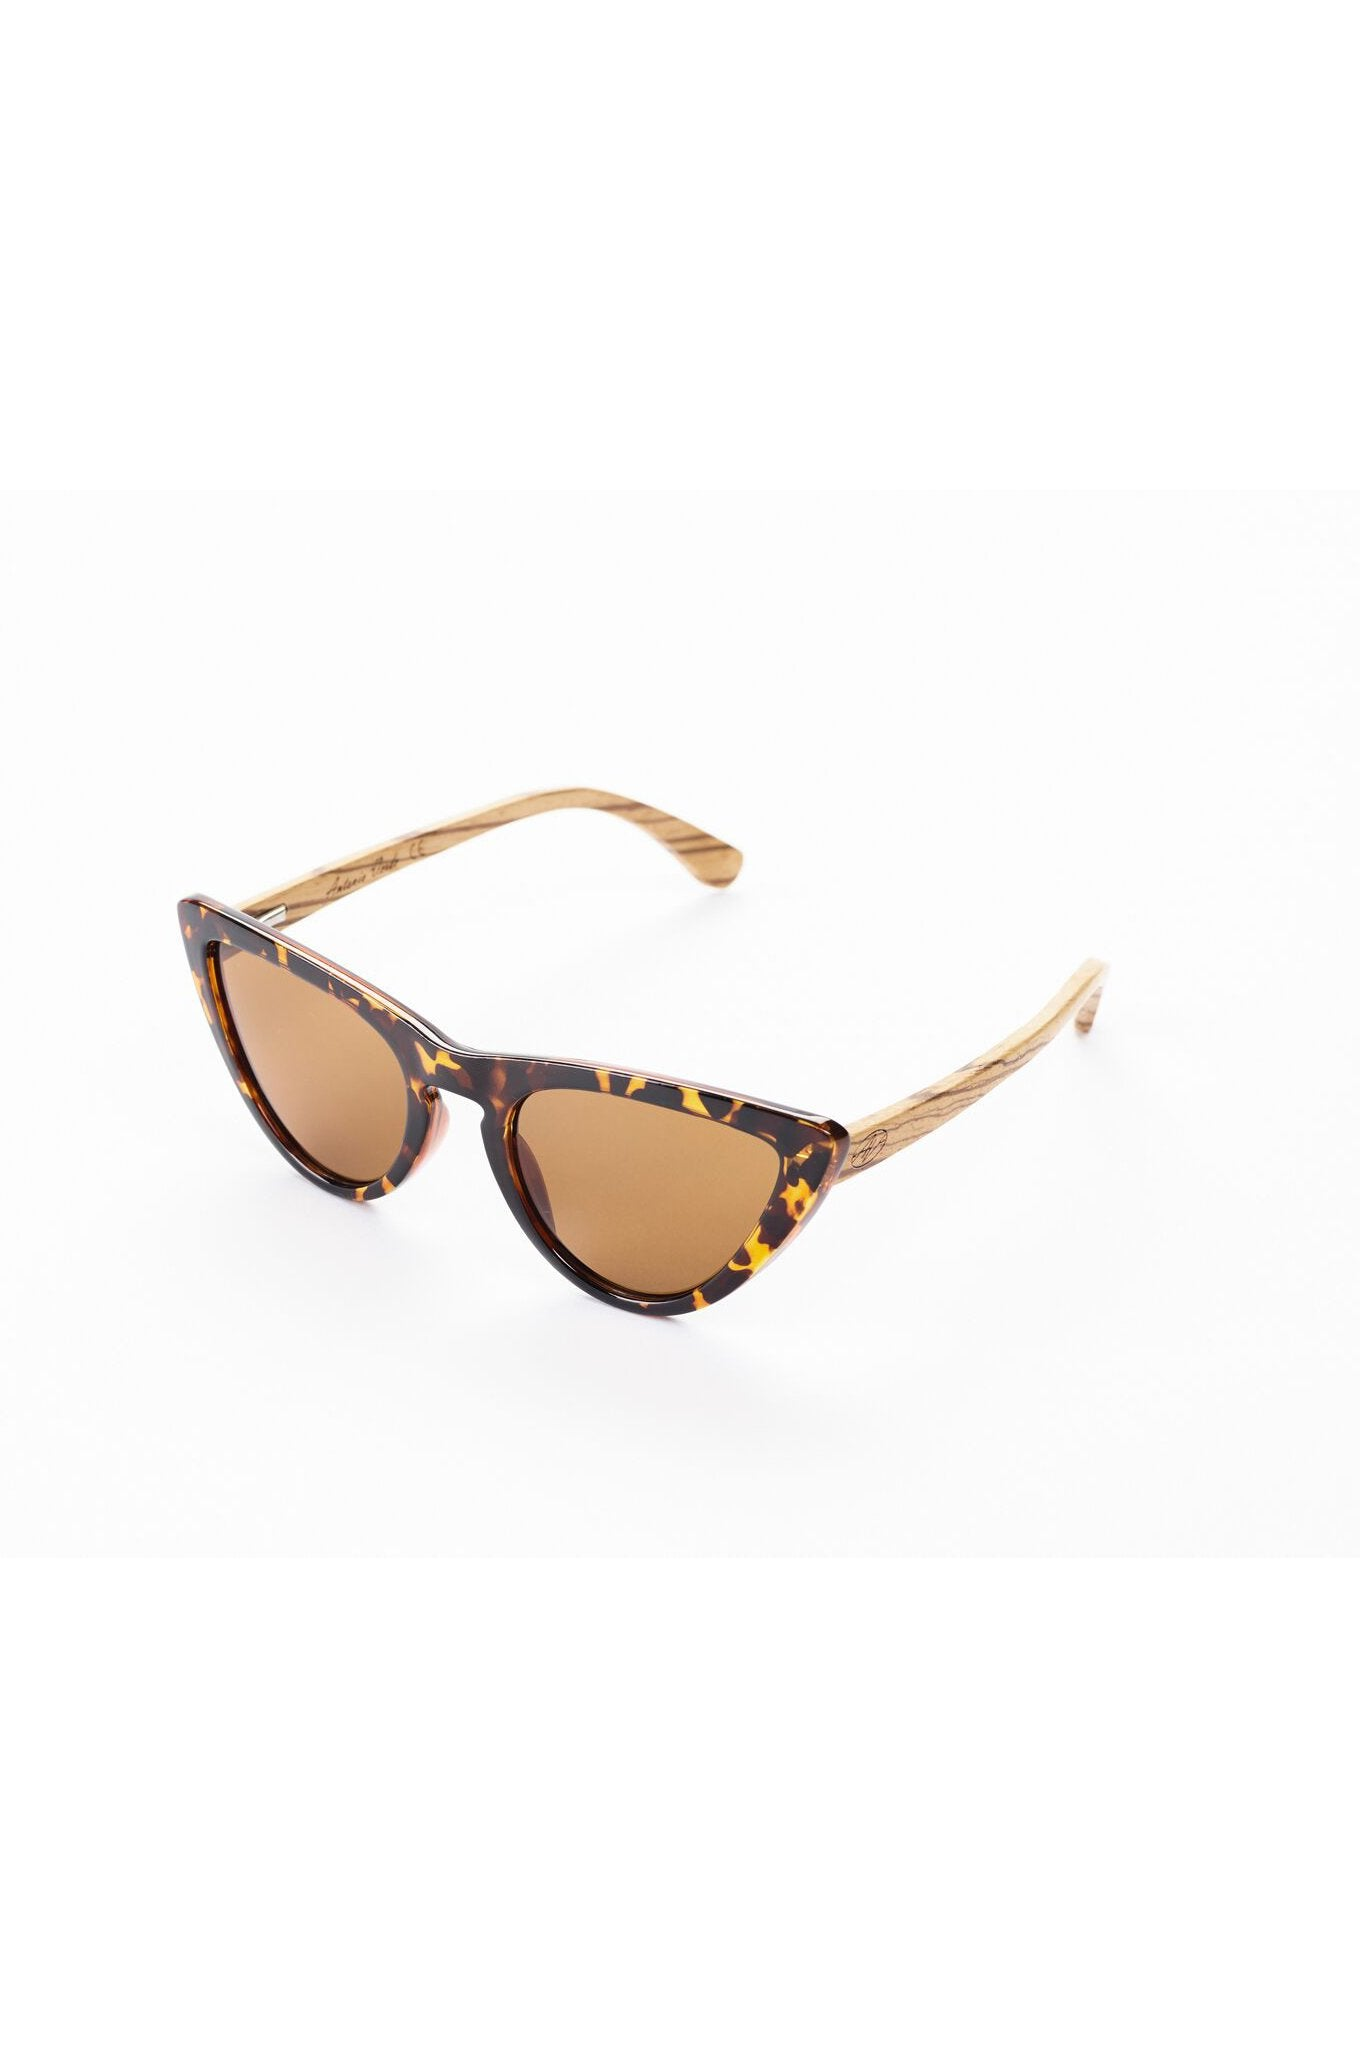 Brown Sustainable & Vegan Bamboo Sunglasses Panther Cat by Antonio Verde